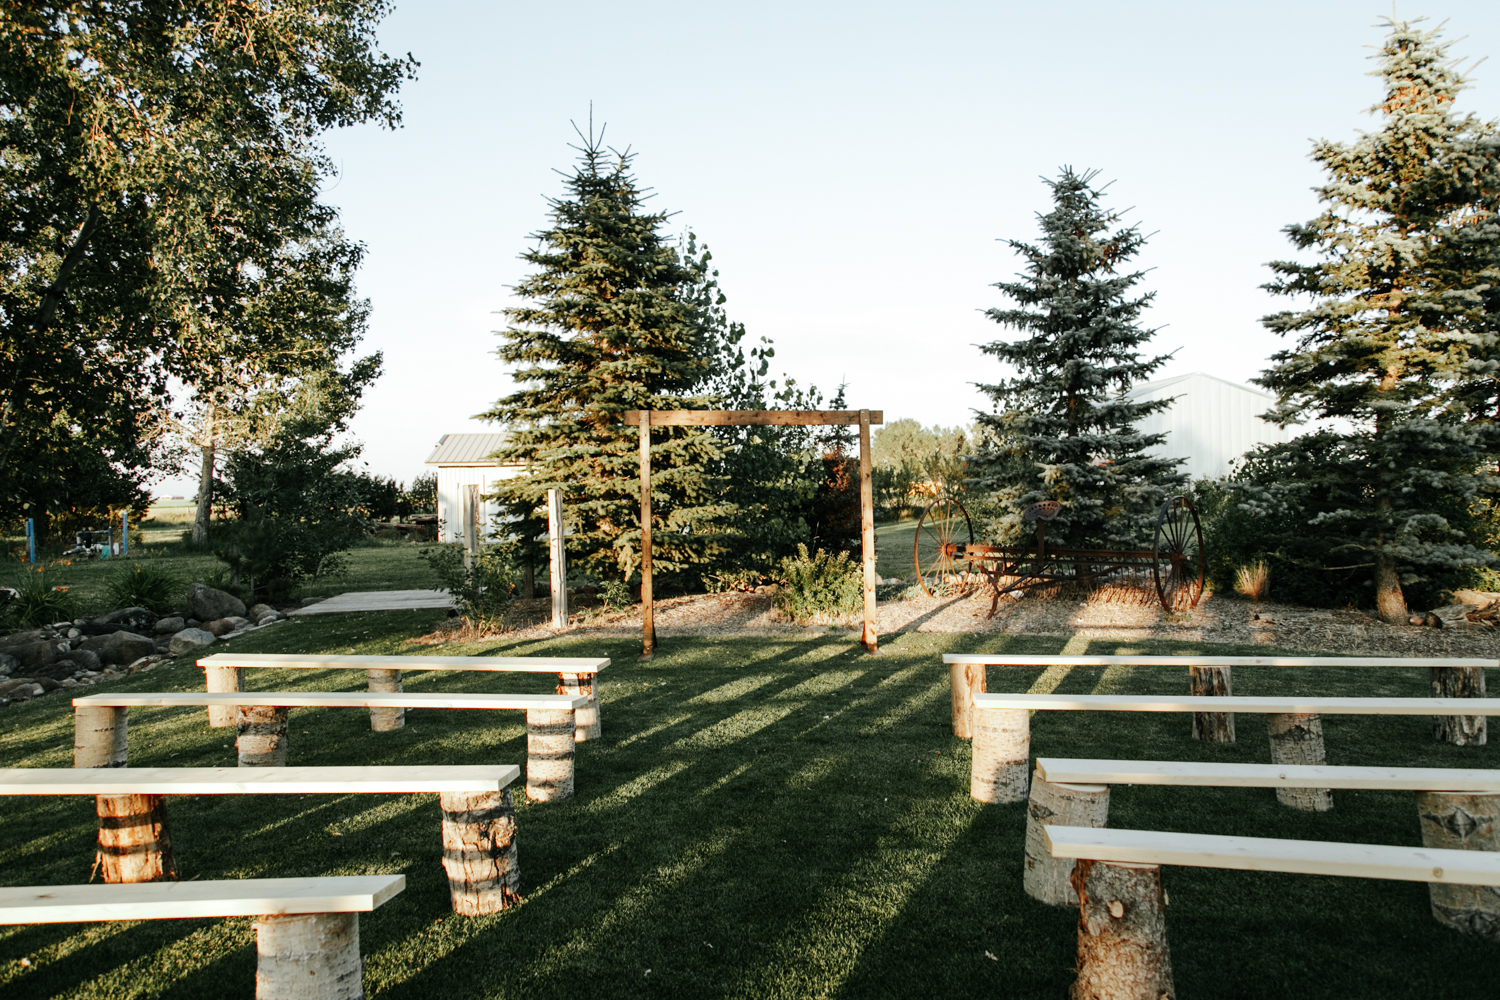 lethbridge-photographer-readymade-community-centre-wedding-coaldale-bailey-joel-picture-image-photo-1.jpg